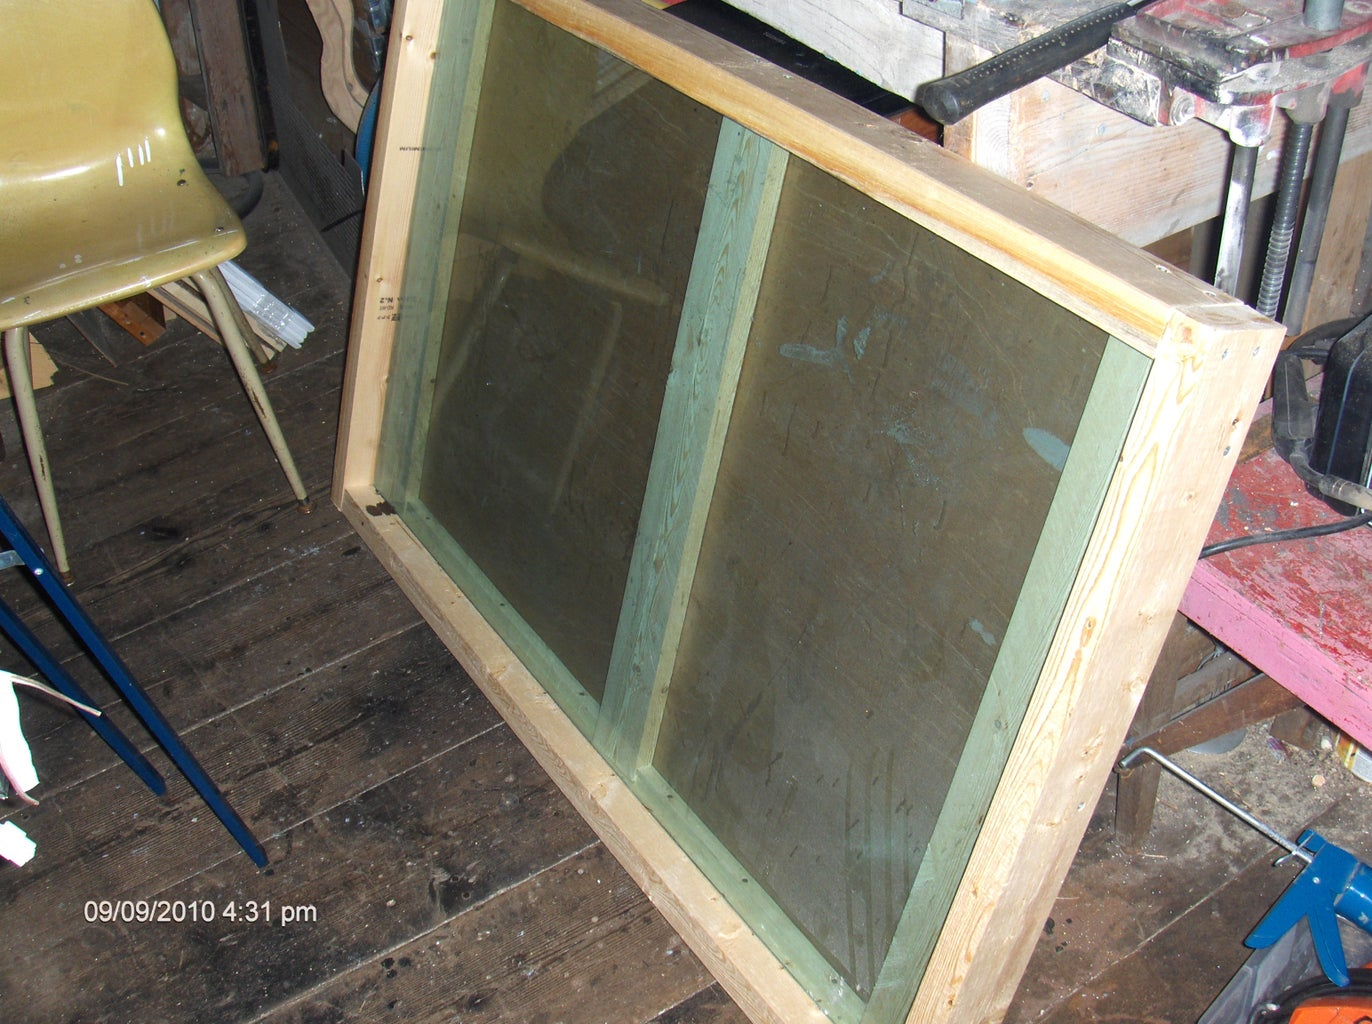 Building the Panel Frame - Get Out the Gorilla Glue!